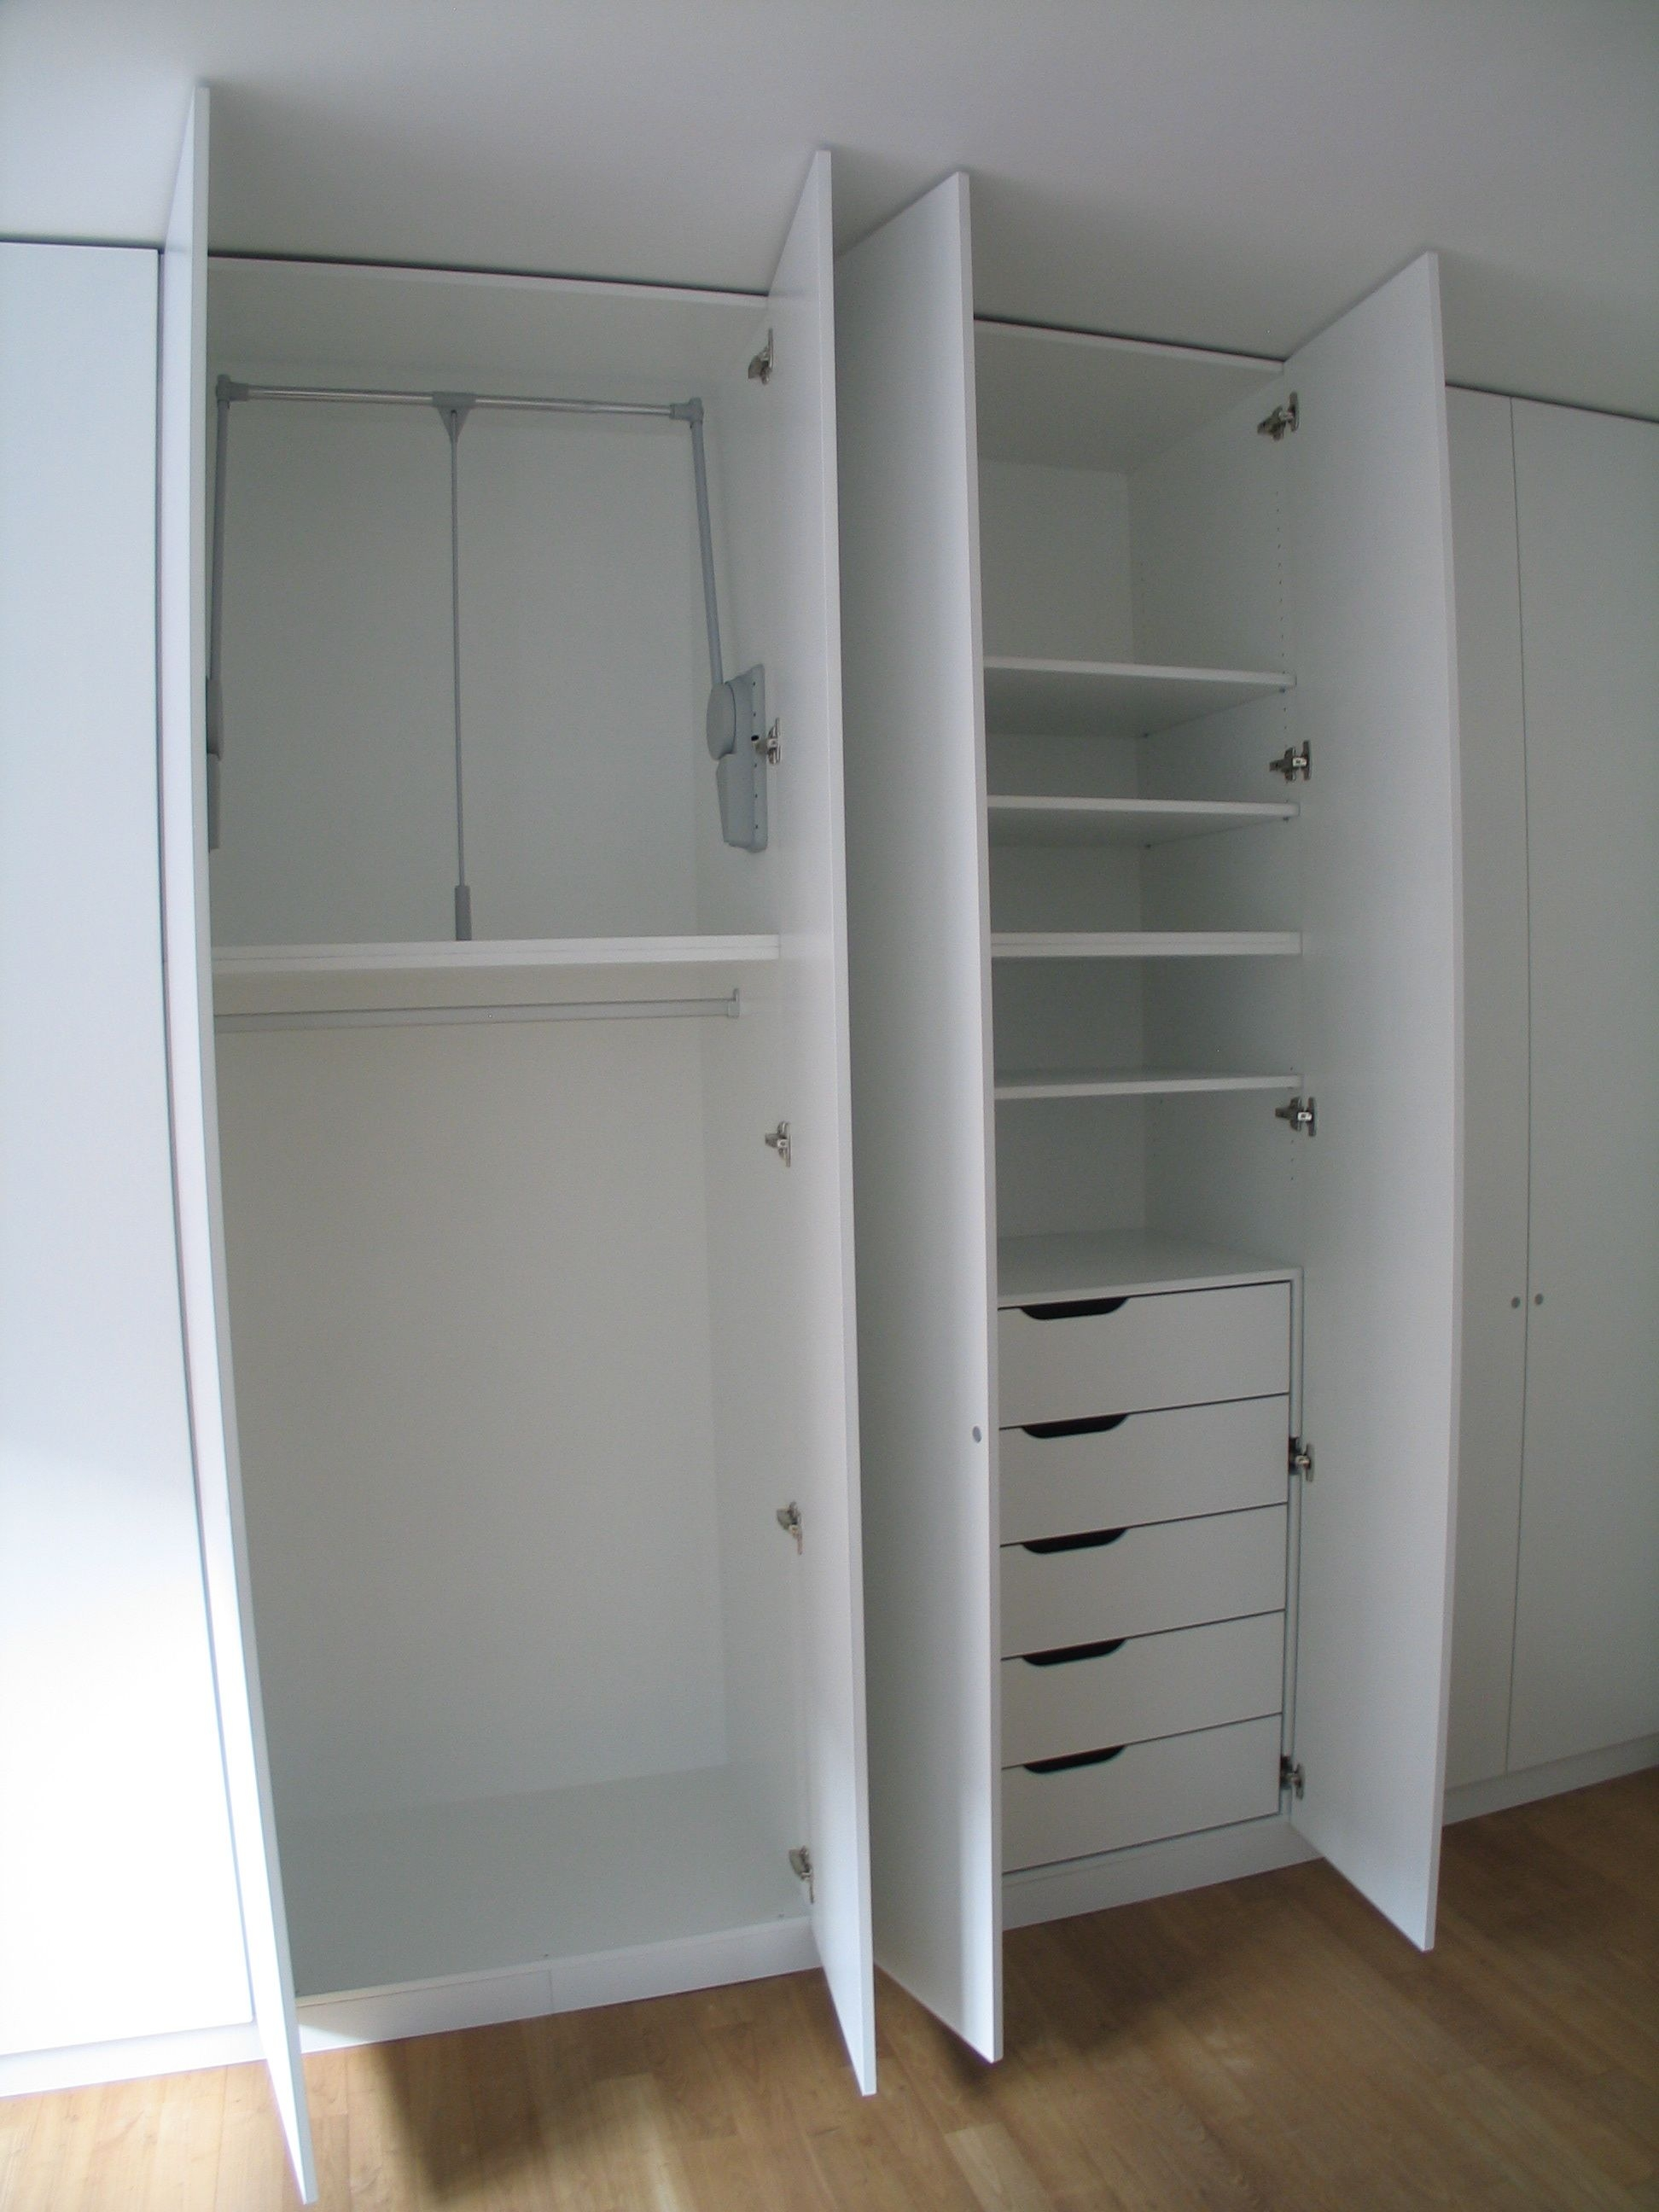 Furniture Wonderful Wardrobe With Drawers Inside Give More Space Pertaining To Wardrobe With Shelves (View 6 of 25)